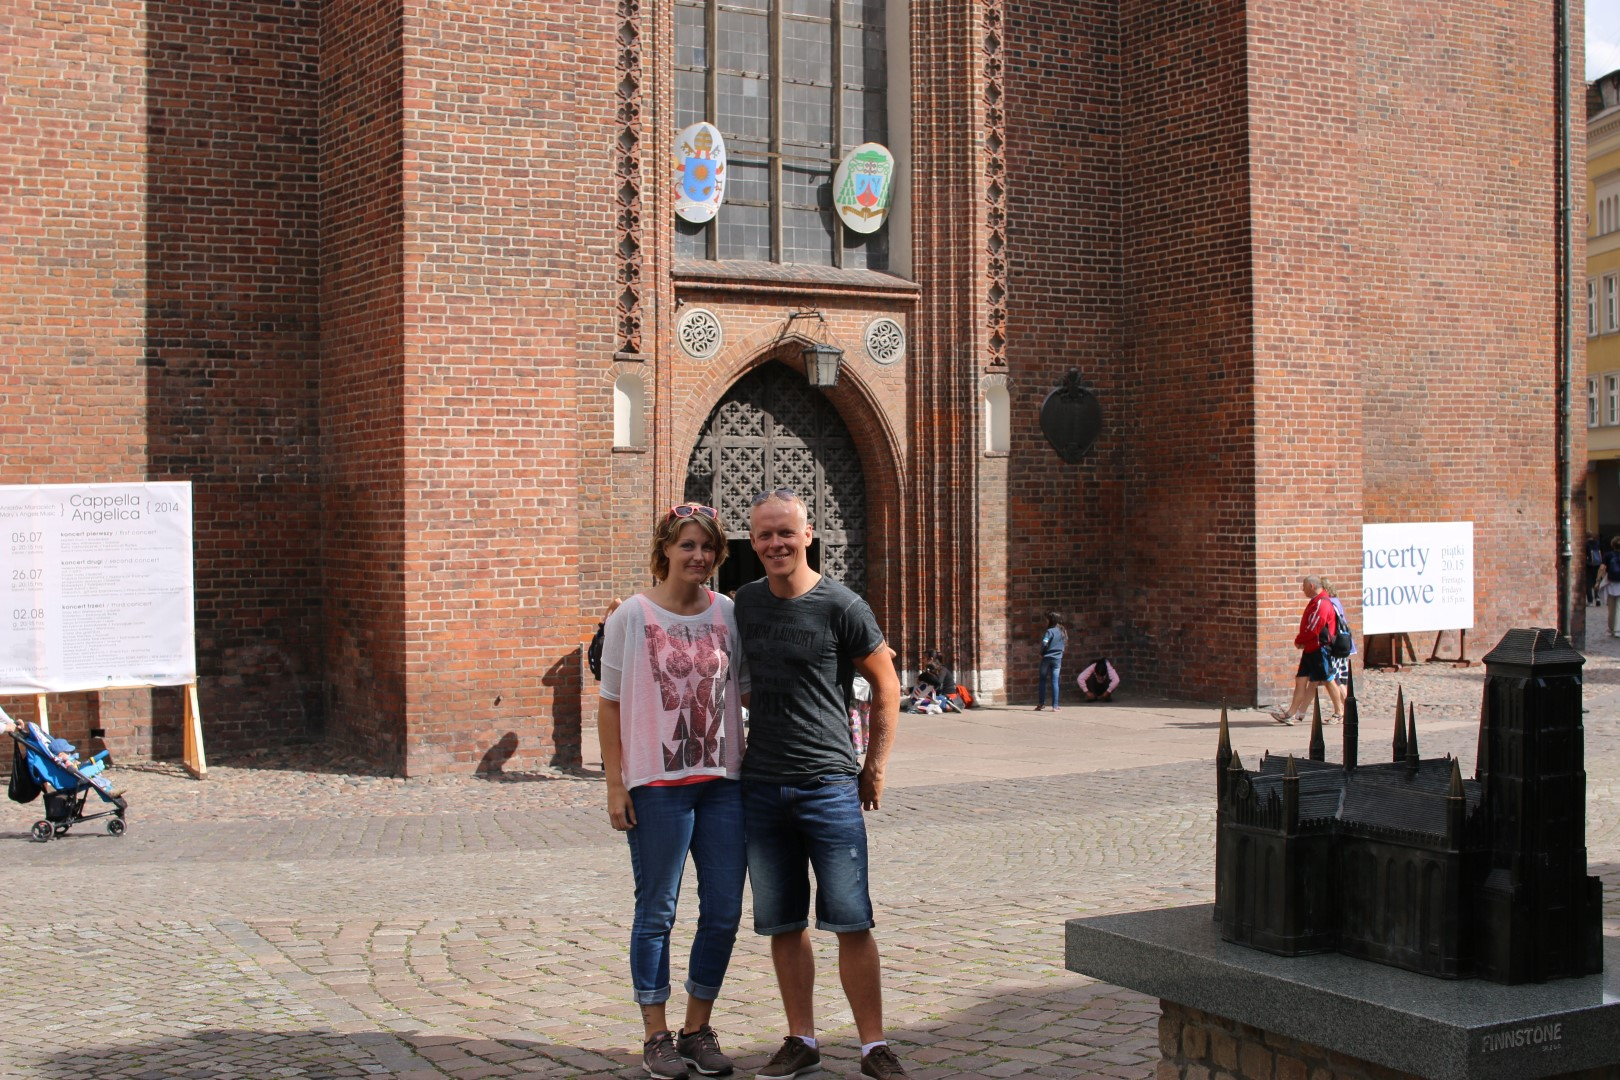 Heading  for  Gdansk,  just  220Km  and  3  countries  keeps  me  apart  from  this  beautiful  city  and  my  girlfriend!